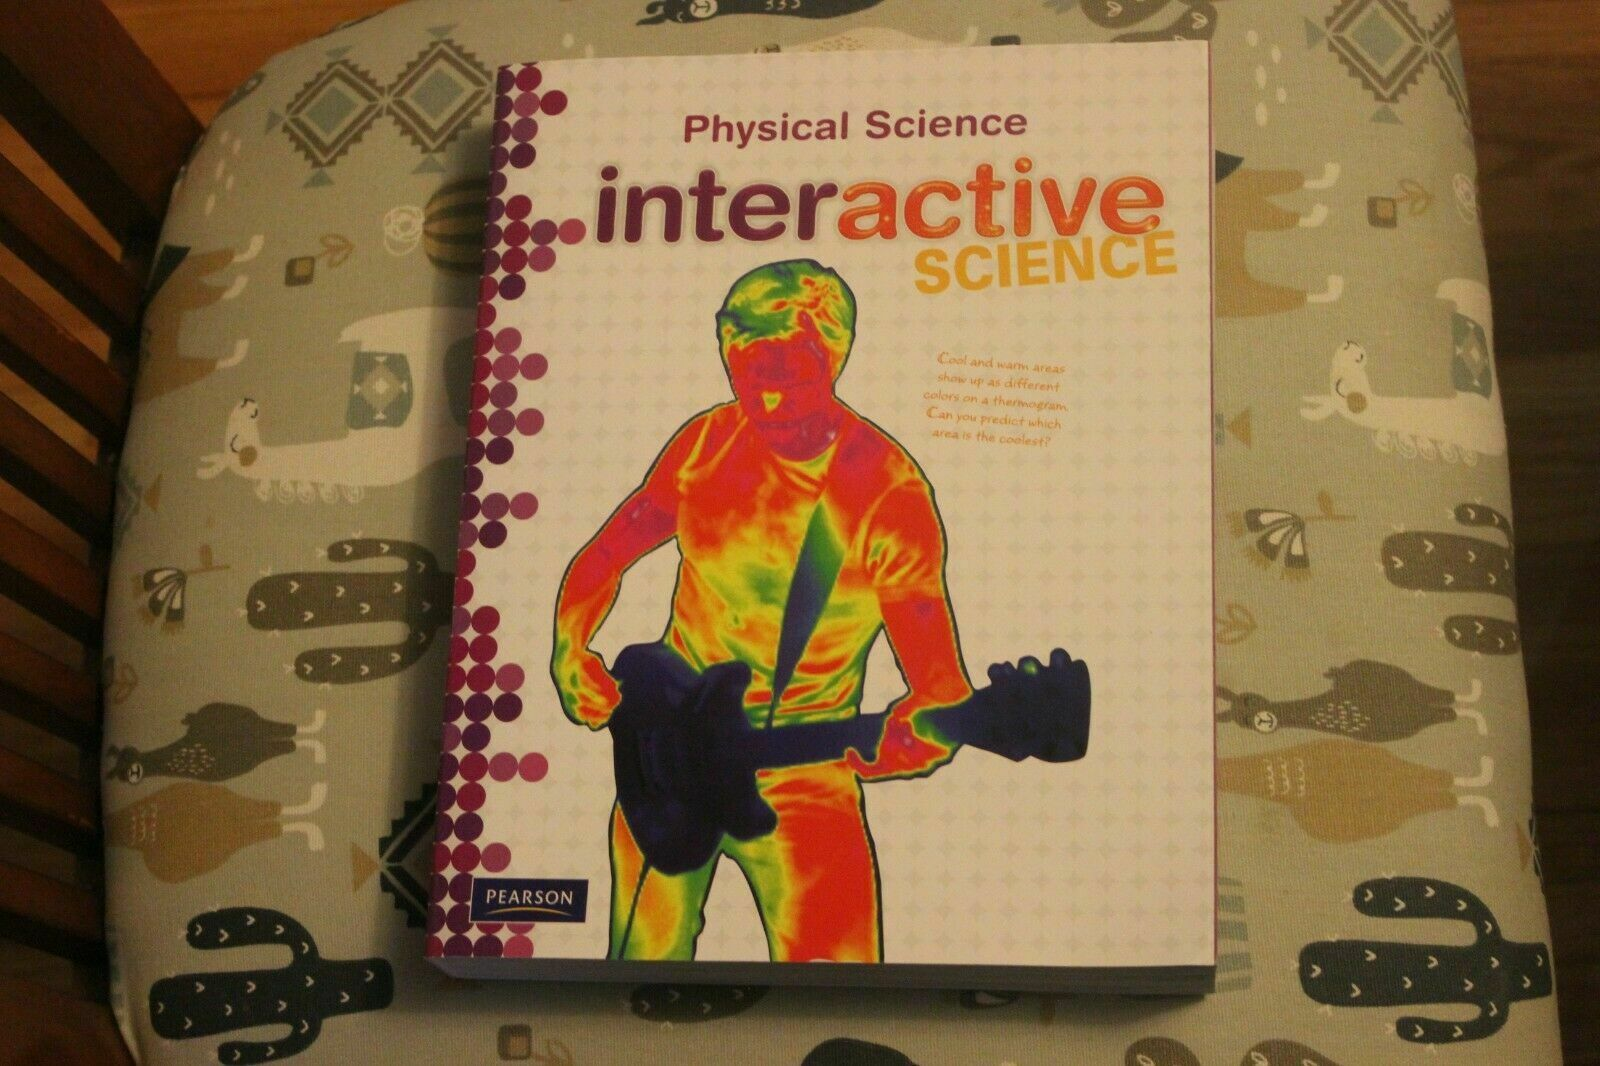 Physical Science Interactive Science Pearson Grade 6 7 8 BRAND NEW!!!!!! 2